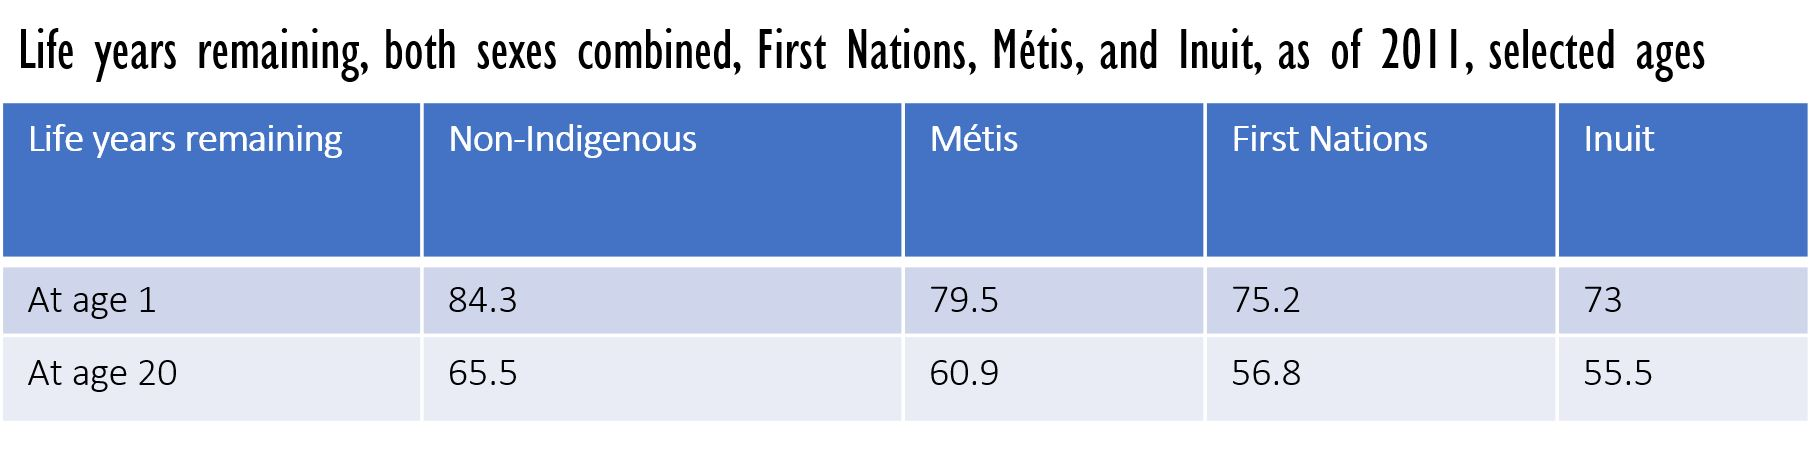 Table listing life years remaining, both sexes combined, First Nations, Métis, and Inuit, as of 2011, selected ages.